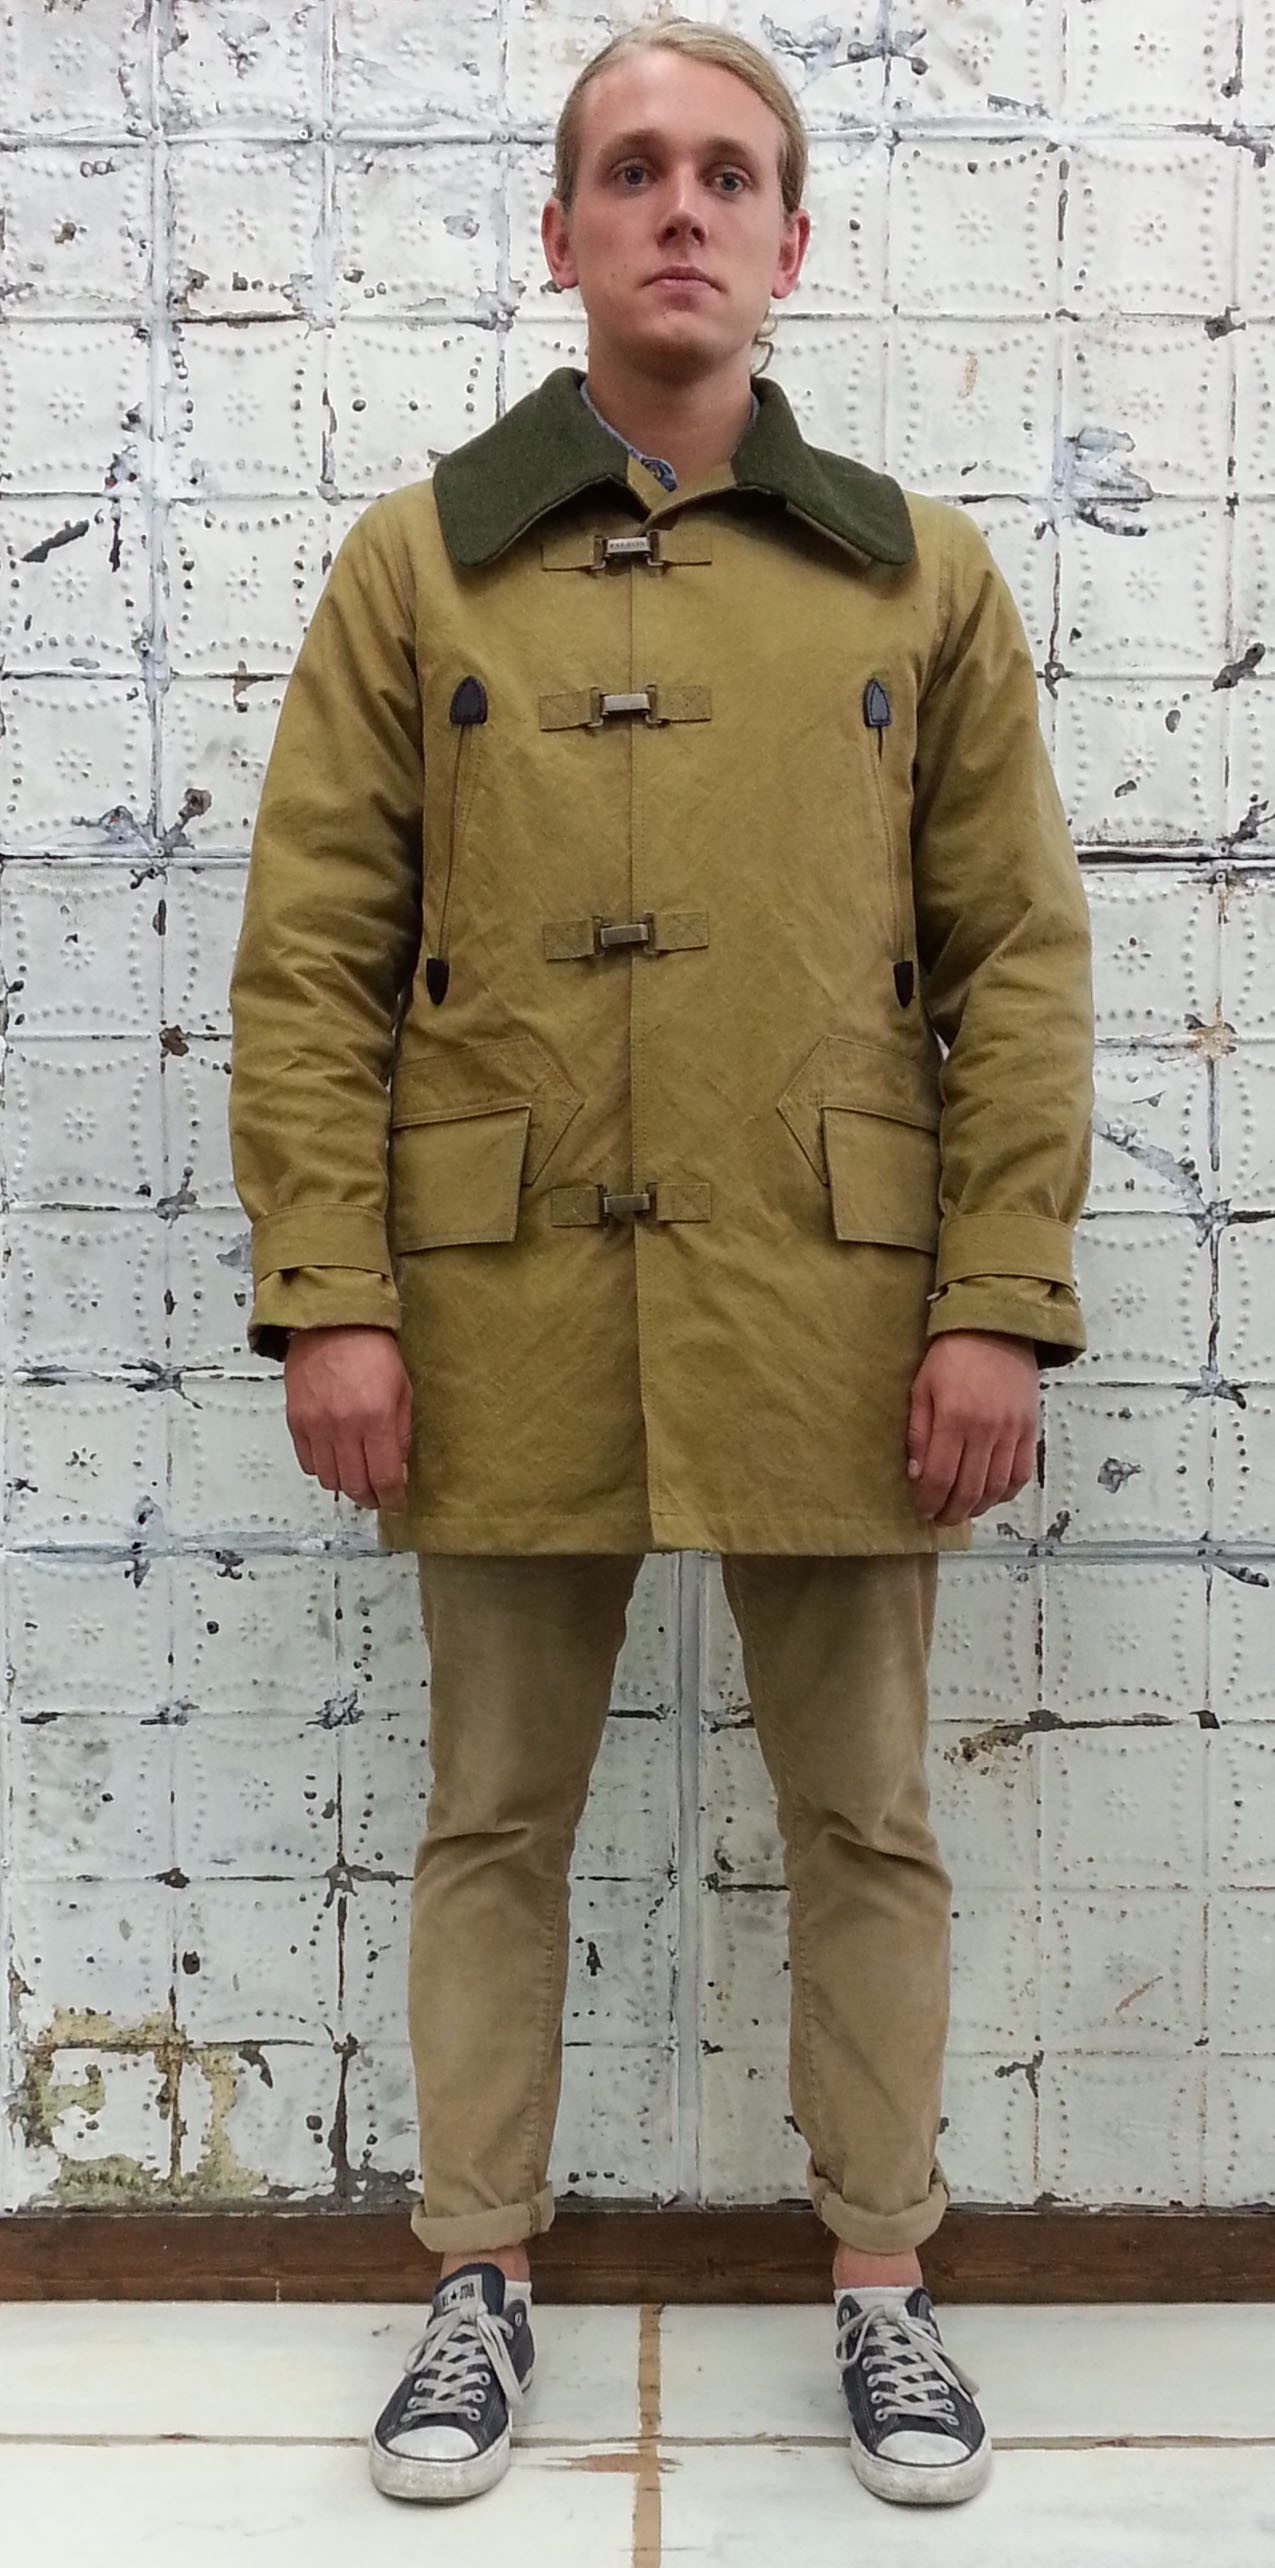 c7e2367fc37d Comparing other tan colored Jackets on Filson s web shop makes me believe  its the lighting that exaggerates the greenish yellows here (from  Mildblend).